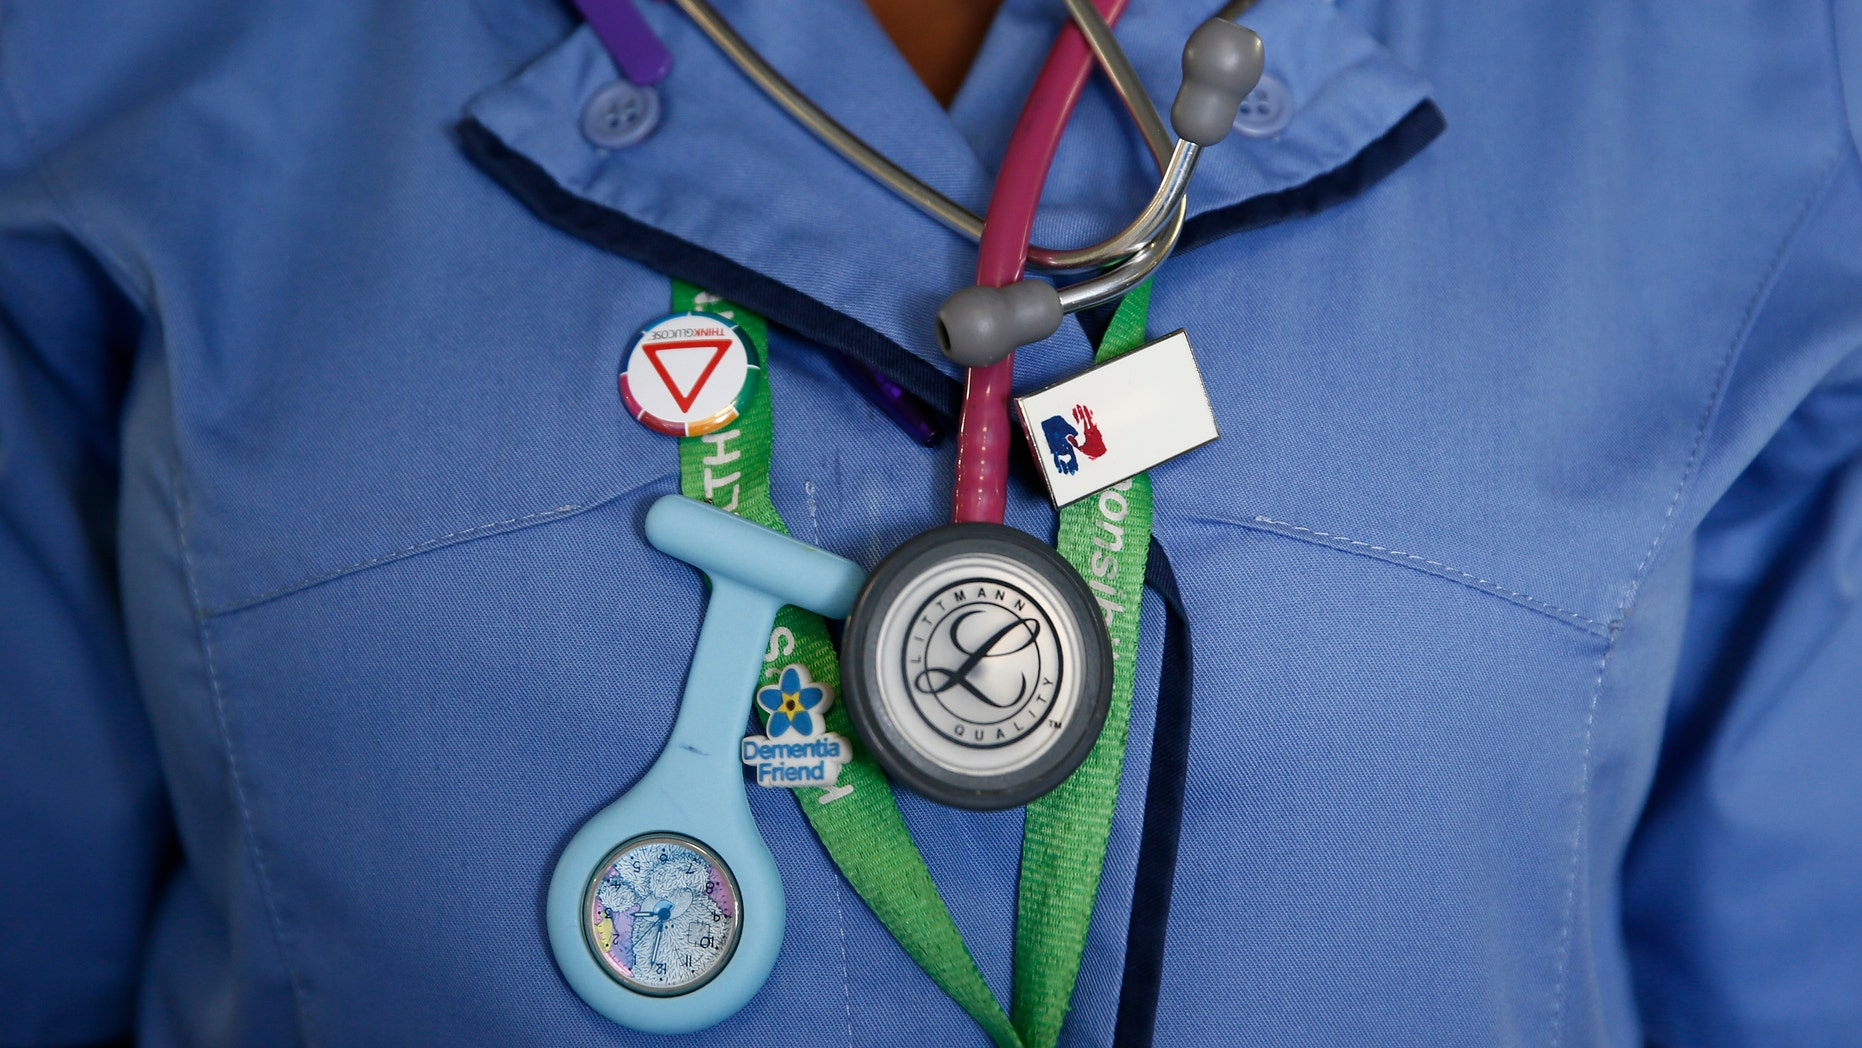 File photo - A nurse wears a watch and stethoscope at St Thomas' Hospital in central London January 28, 2015. (REUTERS/Stefan Wermuth)